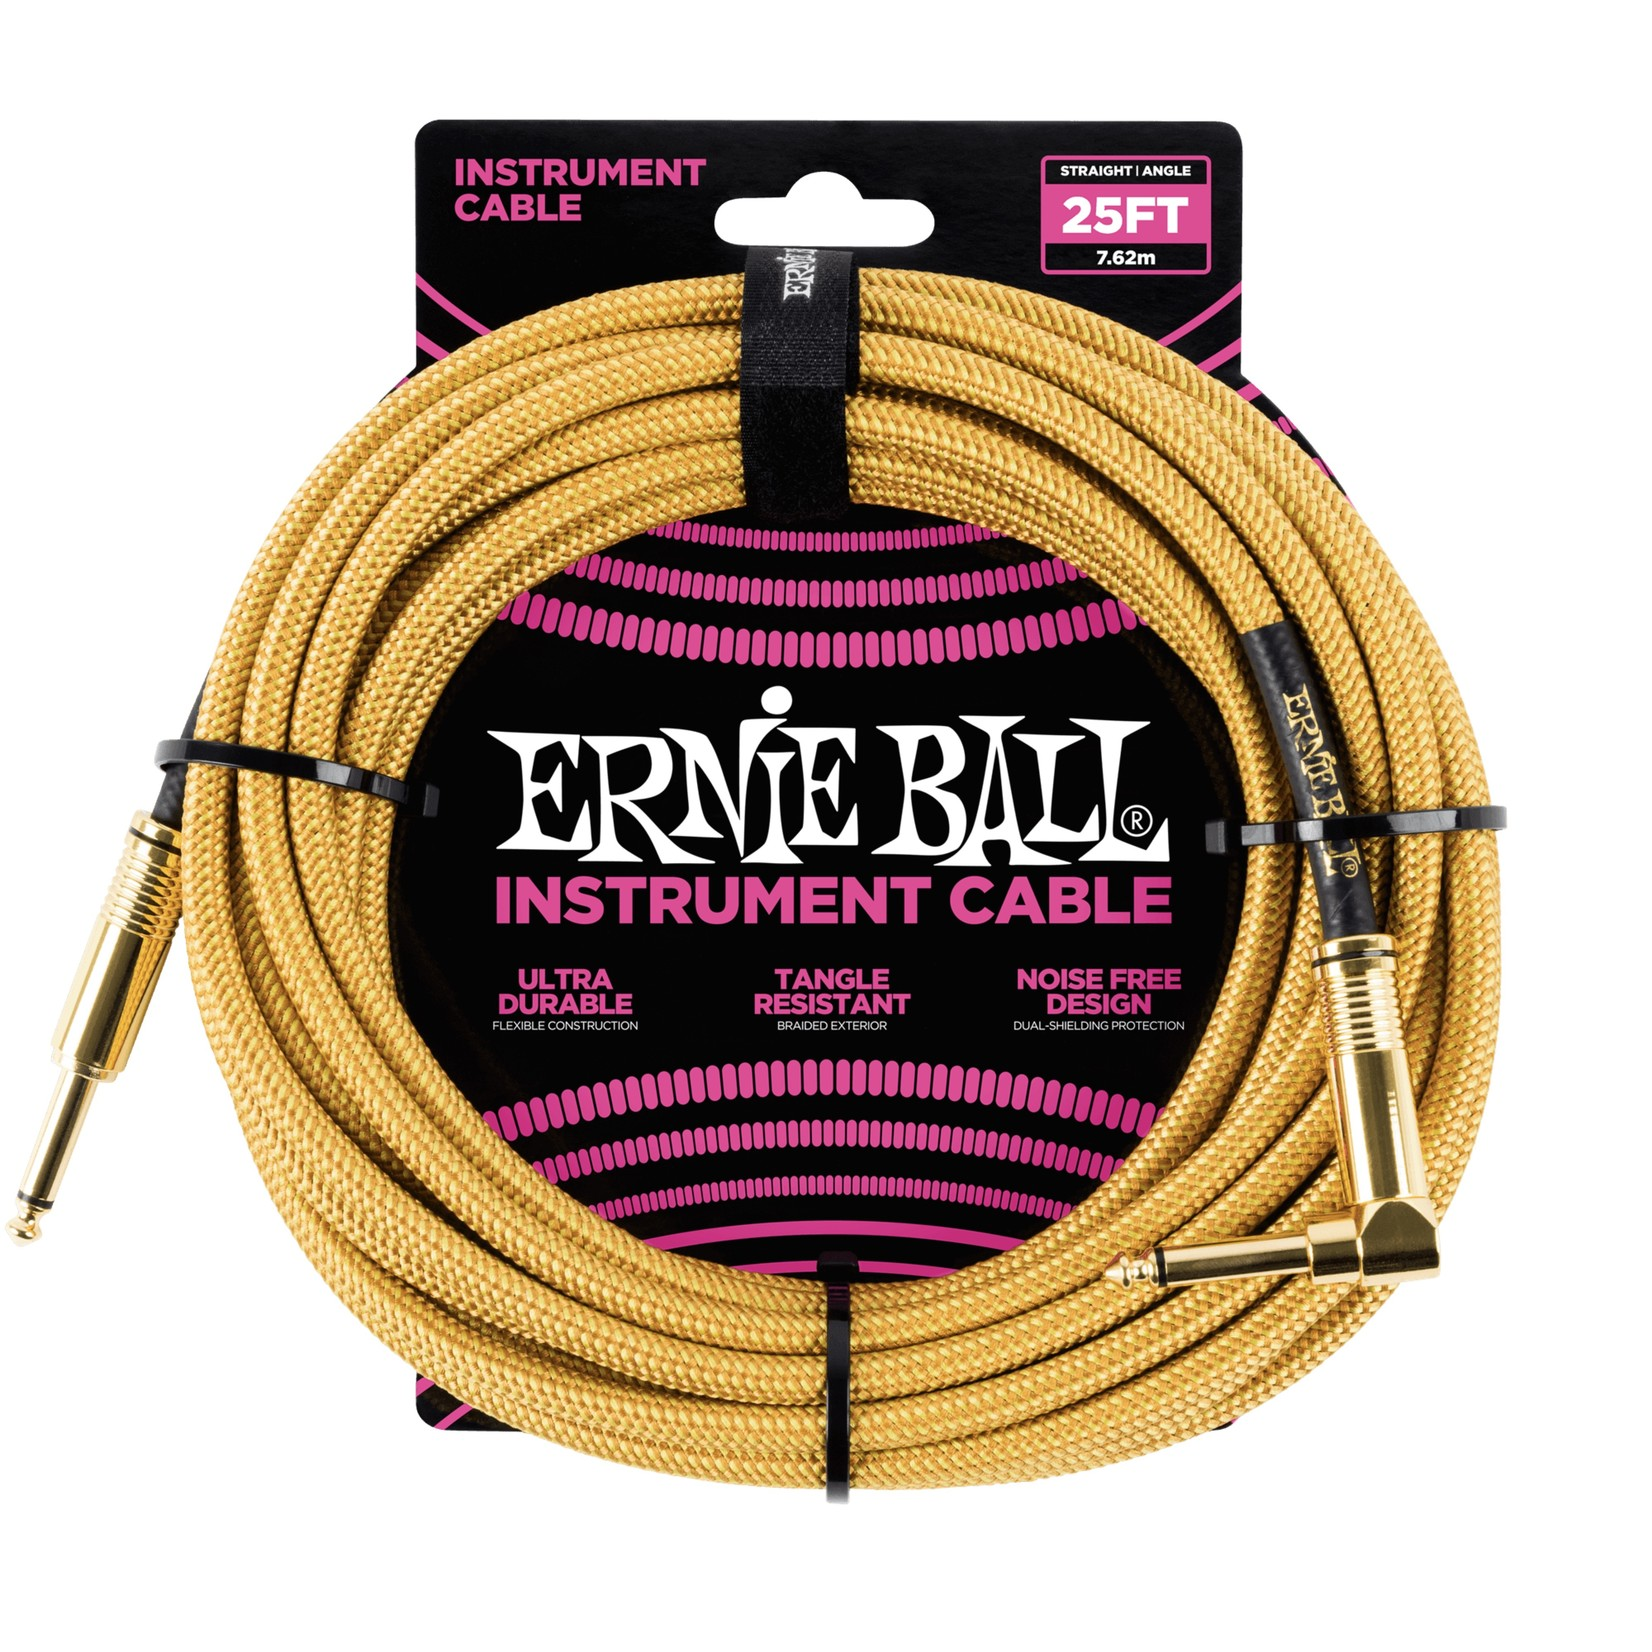 Ernie Ball Ernie Ball 25' Braided Straight / Angle Instrument Cable - Gold/Gold